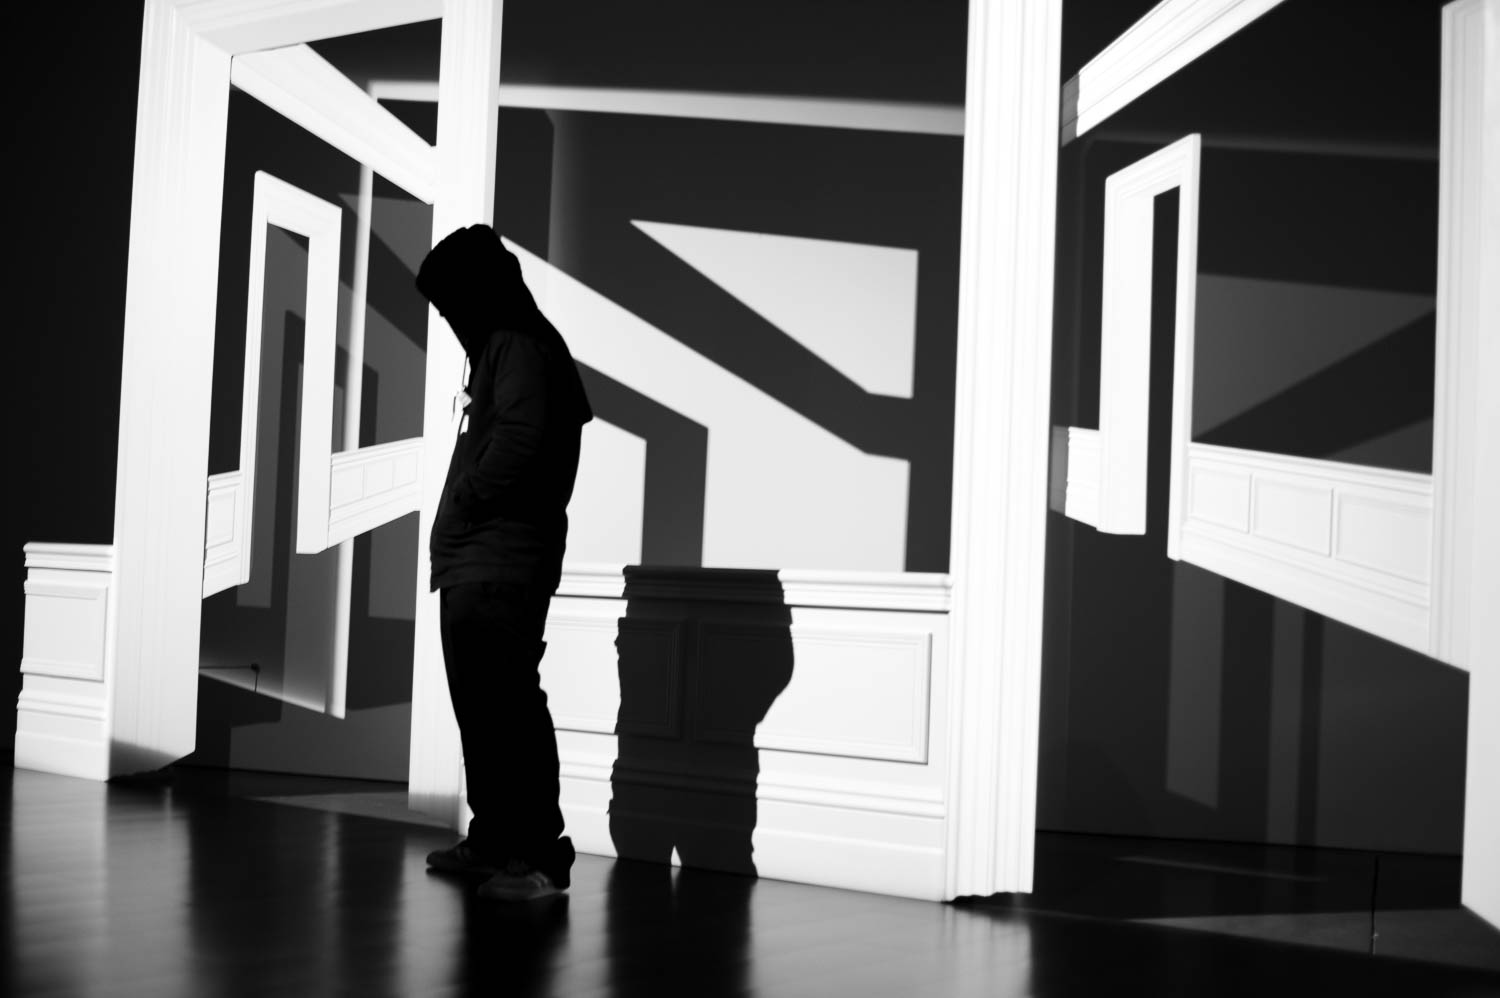 A figure stands in front of an art exhibit at ICA Boston with harsh shadows